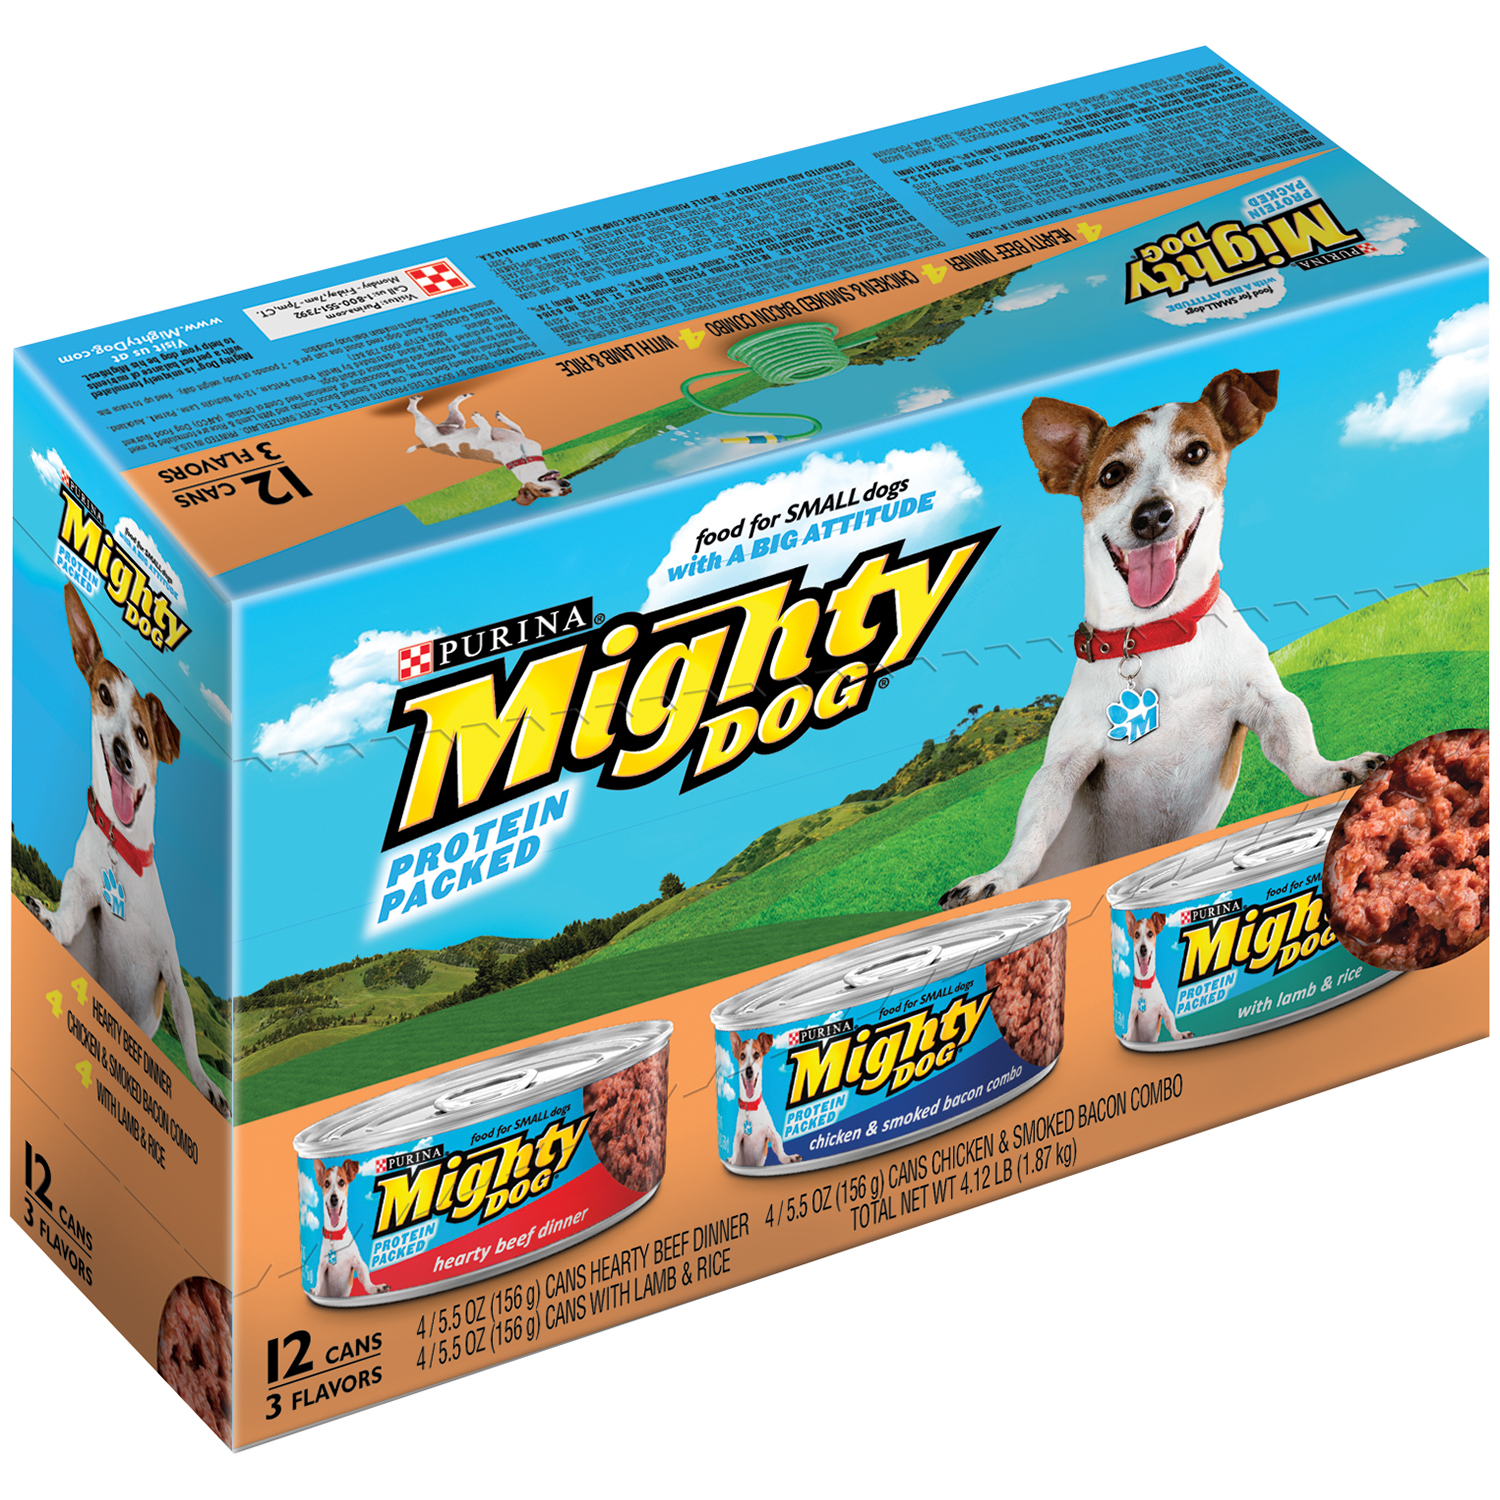 Purina Mighty Dog Hearty Beef Dinner/Chicken and Smoked Bacon Combo/Lamb and Rice Dog Food Variety Pack 12-5.5 oz. Cans